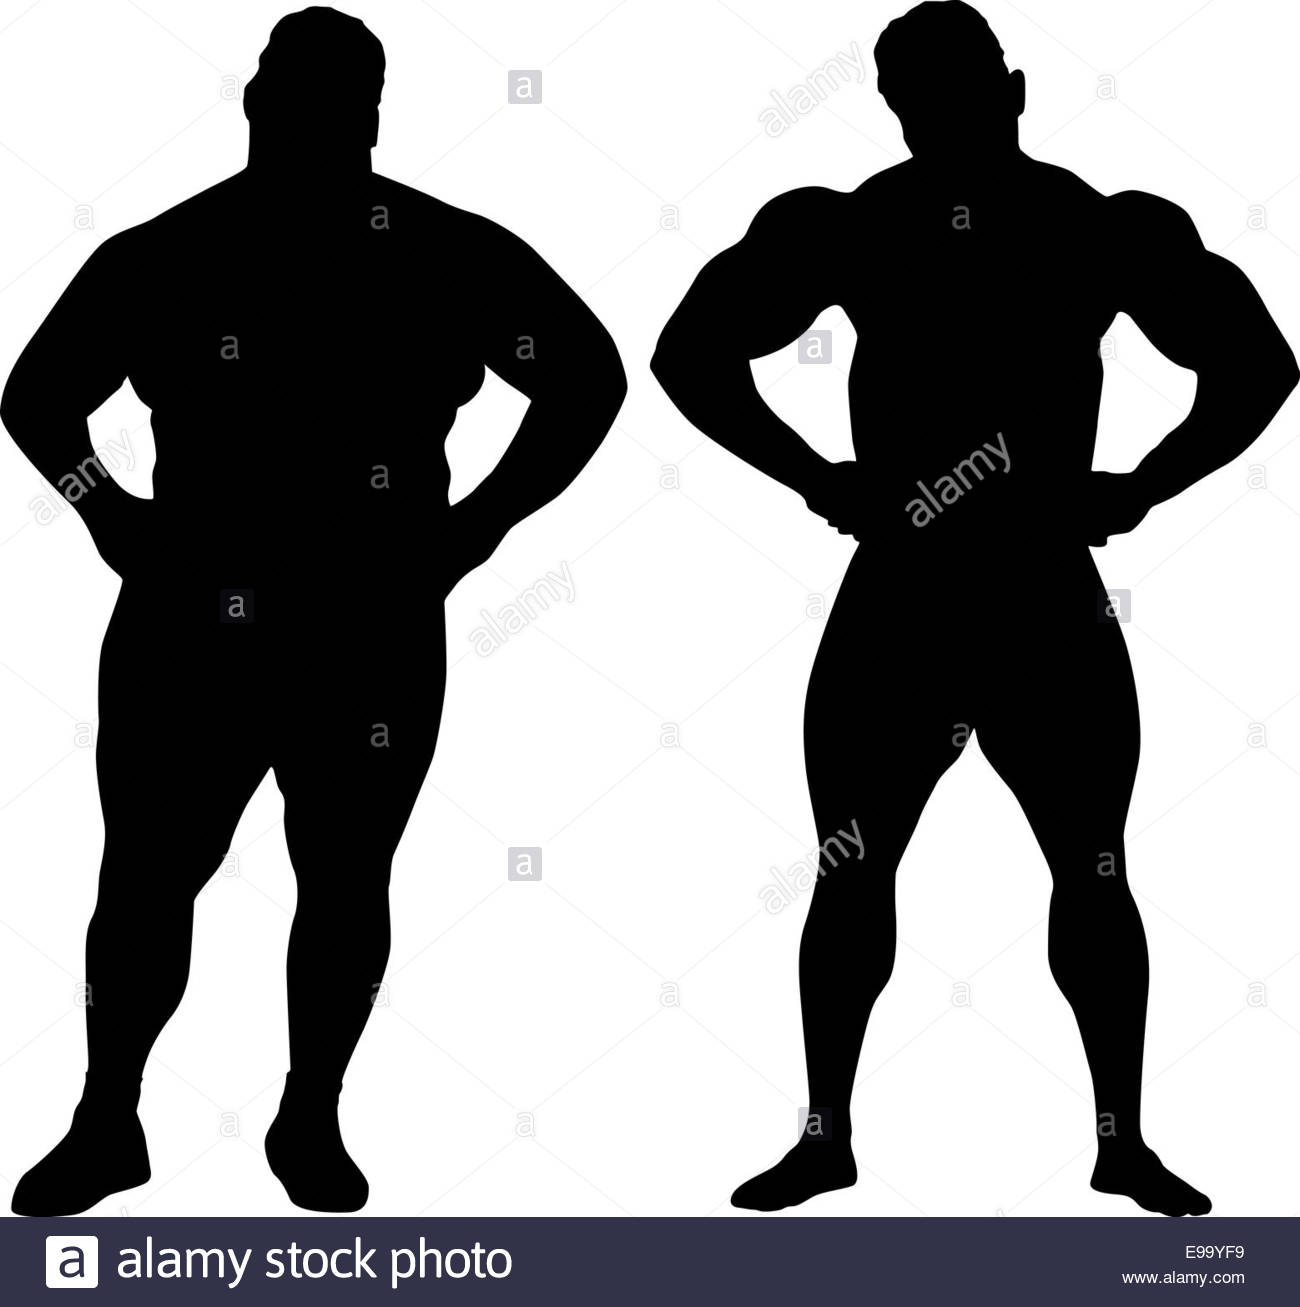 1300x1307 Silhouettes Of Bodybuilder And Fat Man Stock Photo, Royalty Free